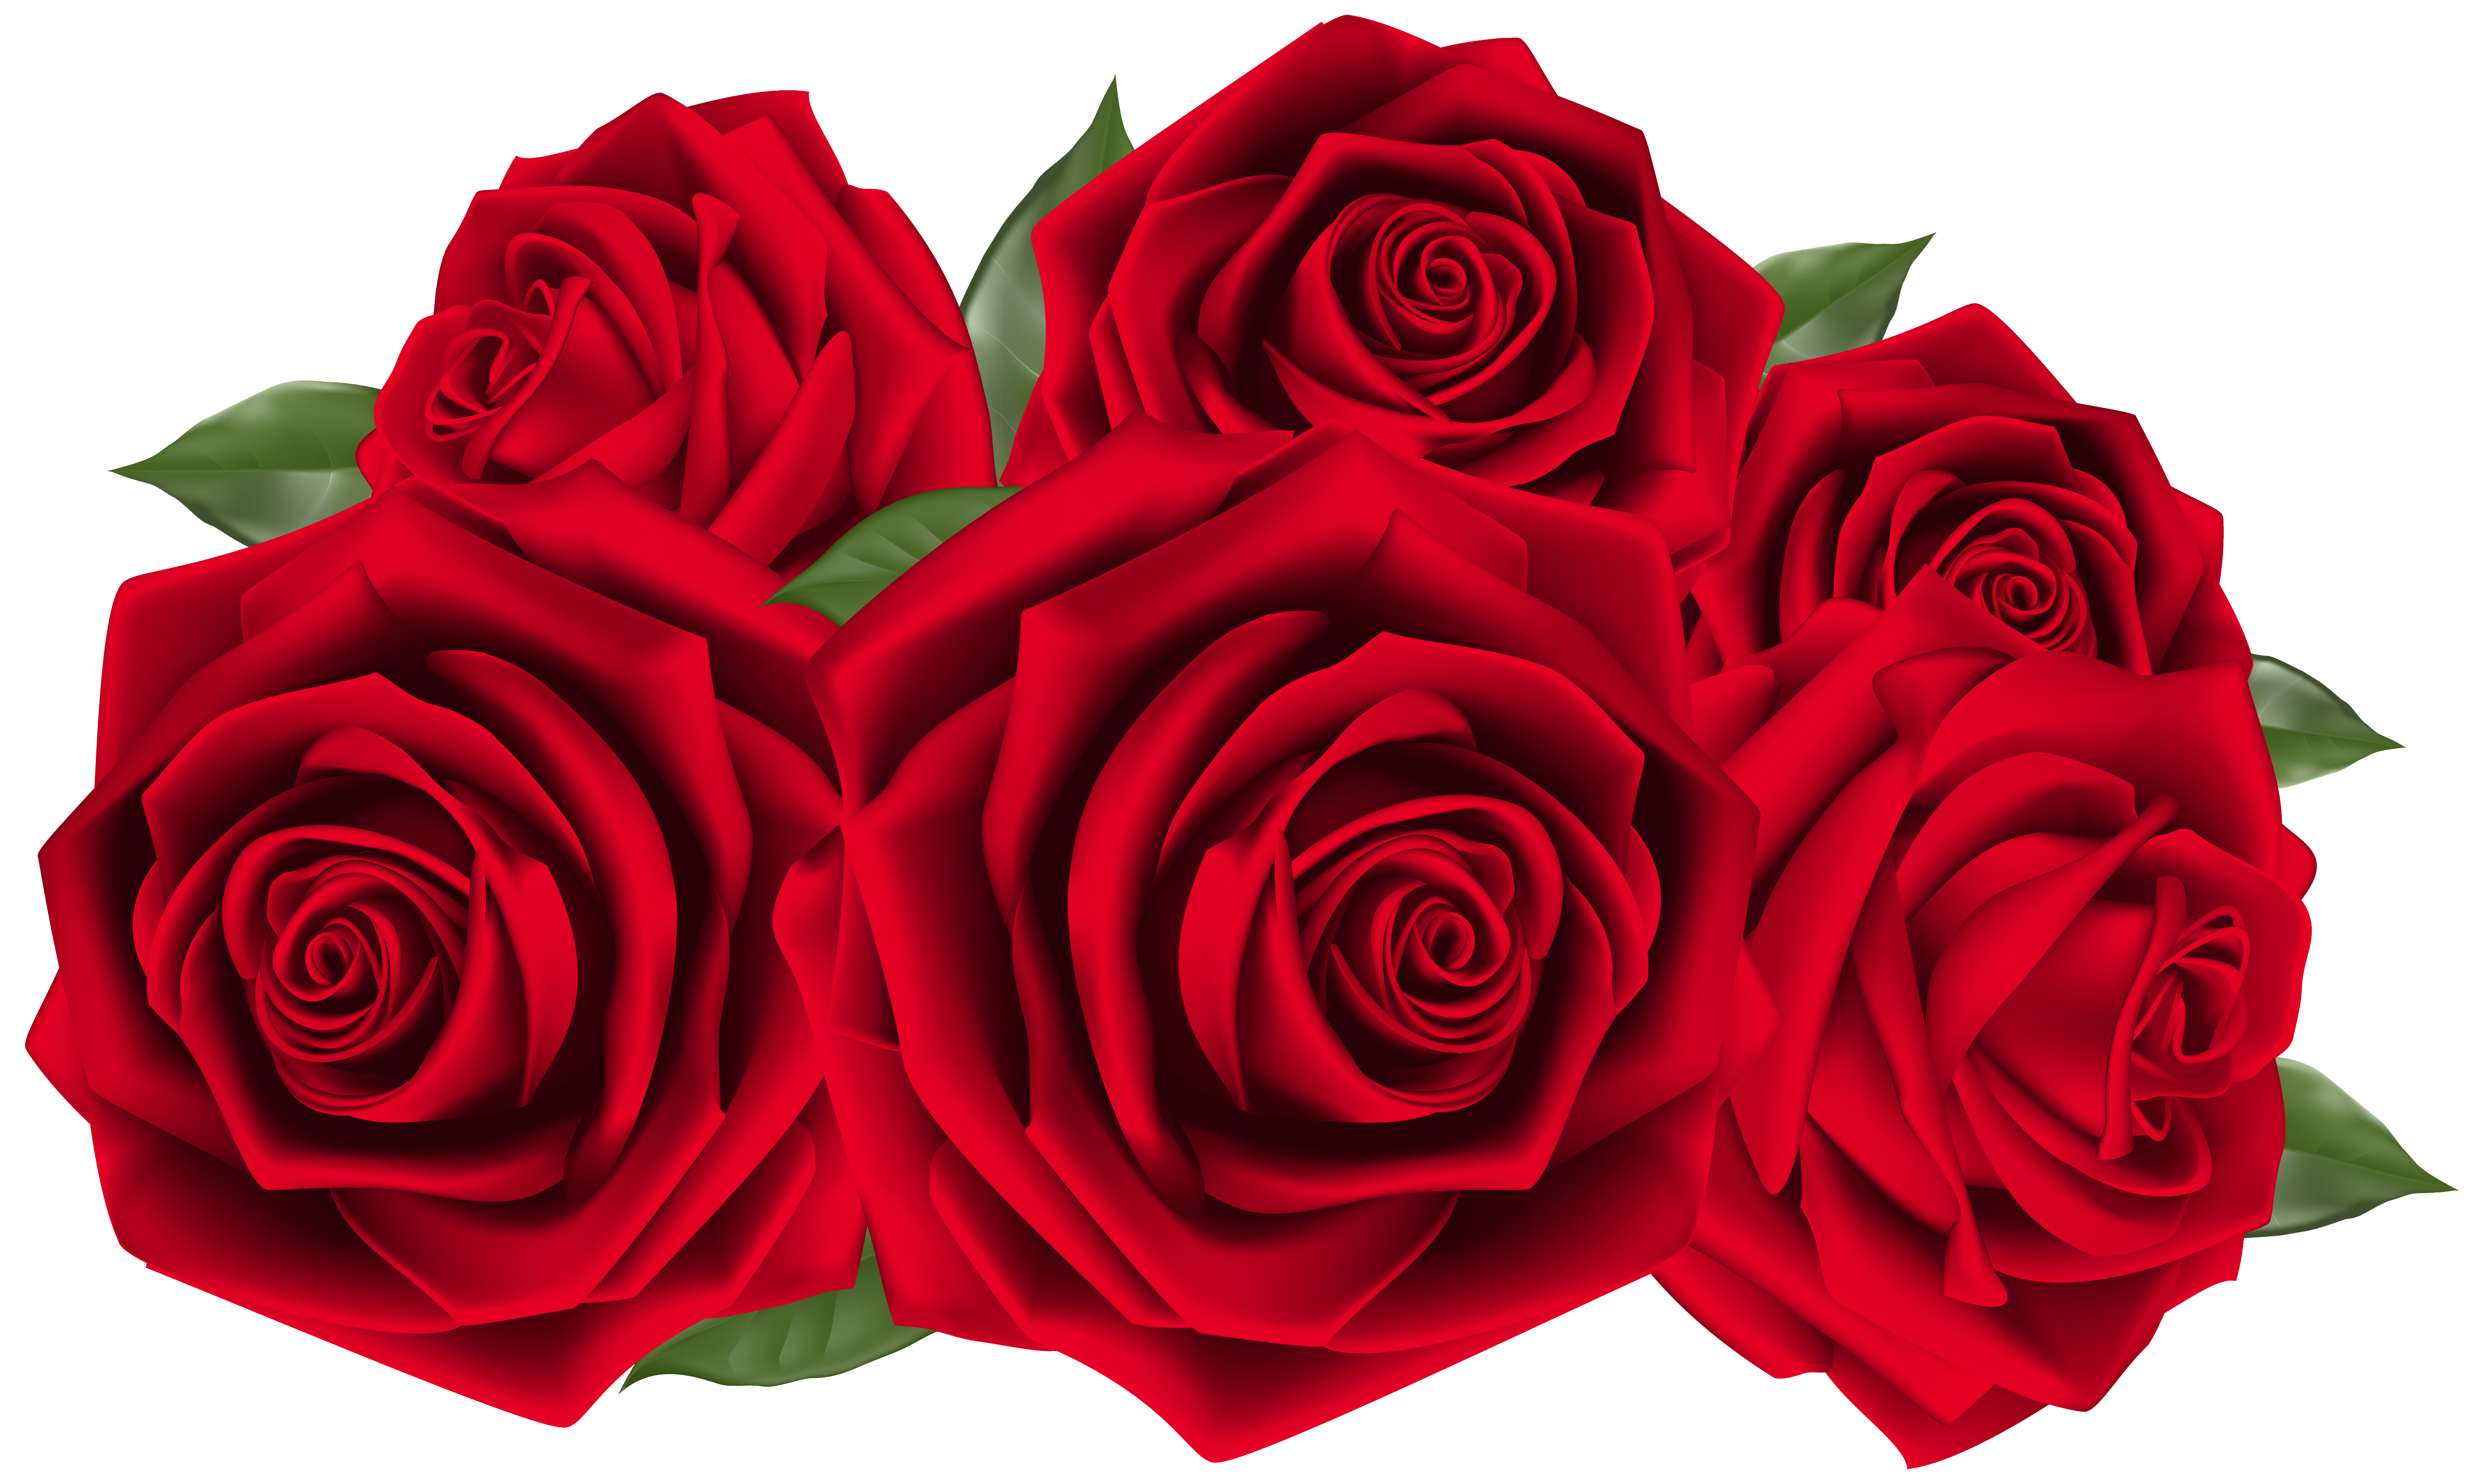 Roses png images. Beautiful dark red clipart